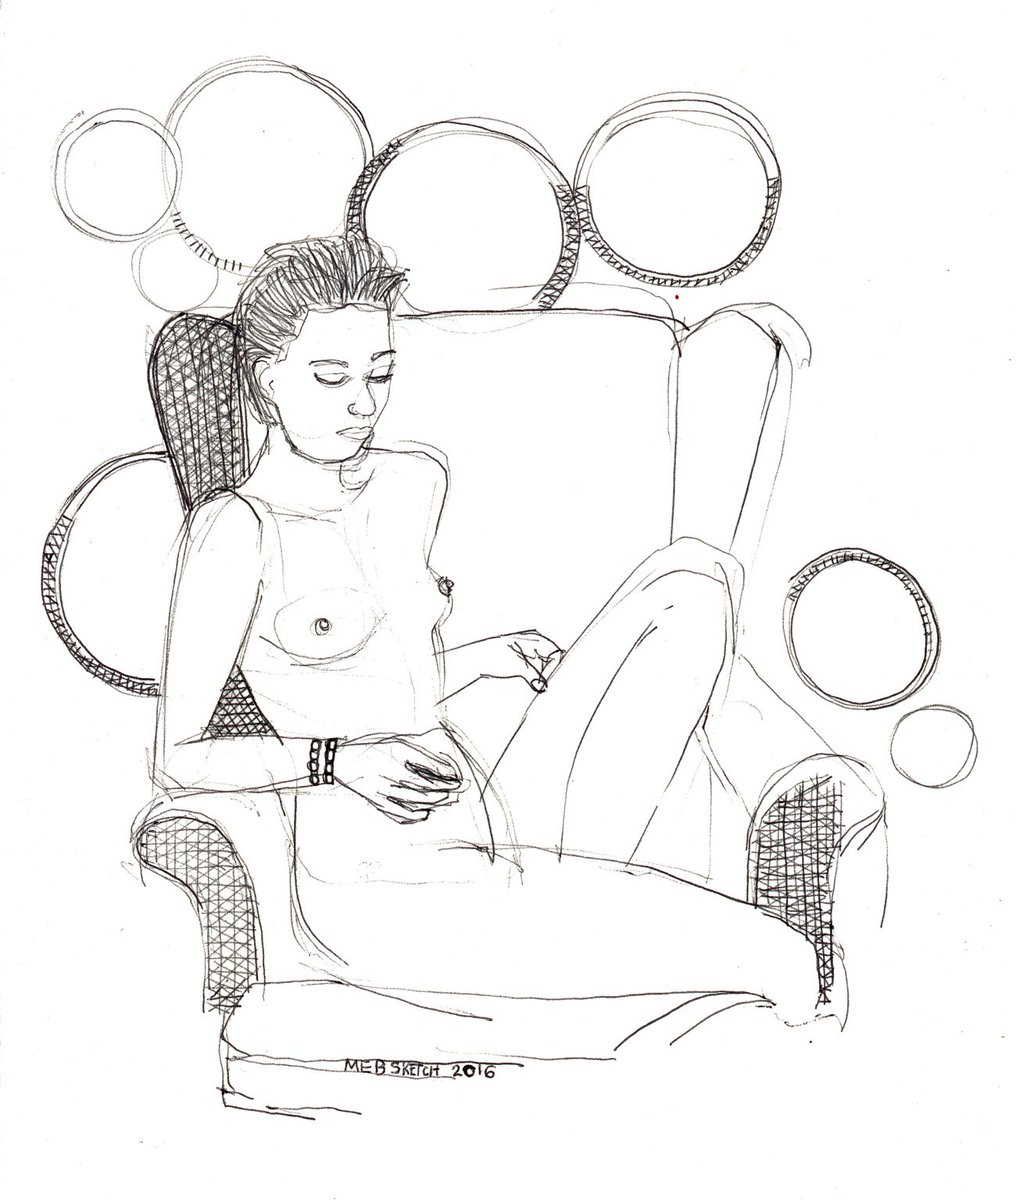 'nude in chair' #art #sketchJanuary #sketch #drawing #draw365 #BigArtBoost #kunst #portrait https://t.co/zZz5OZlSzu